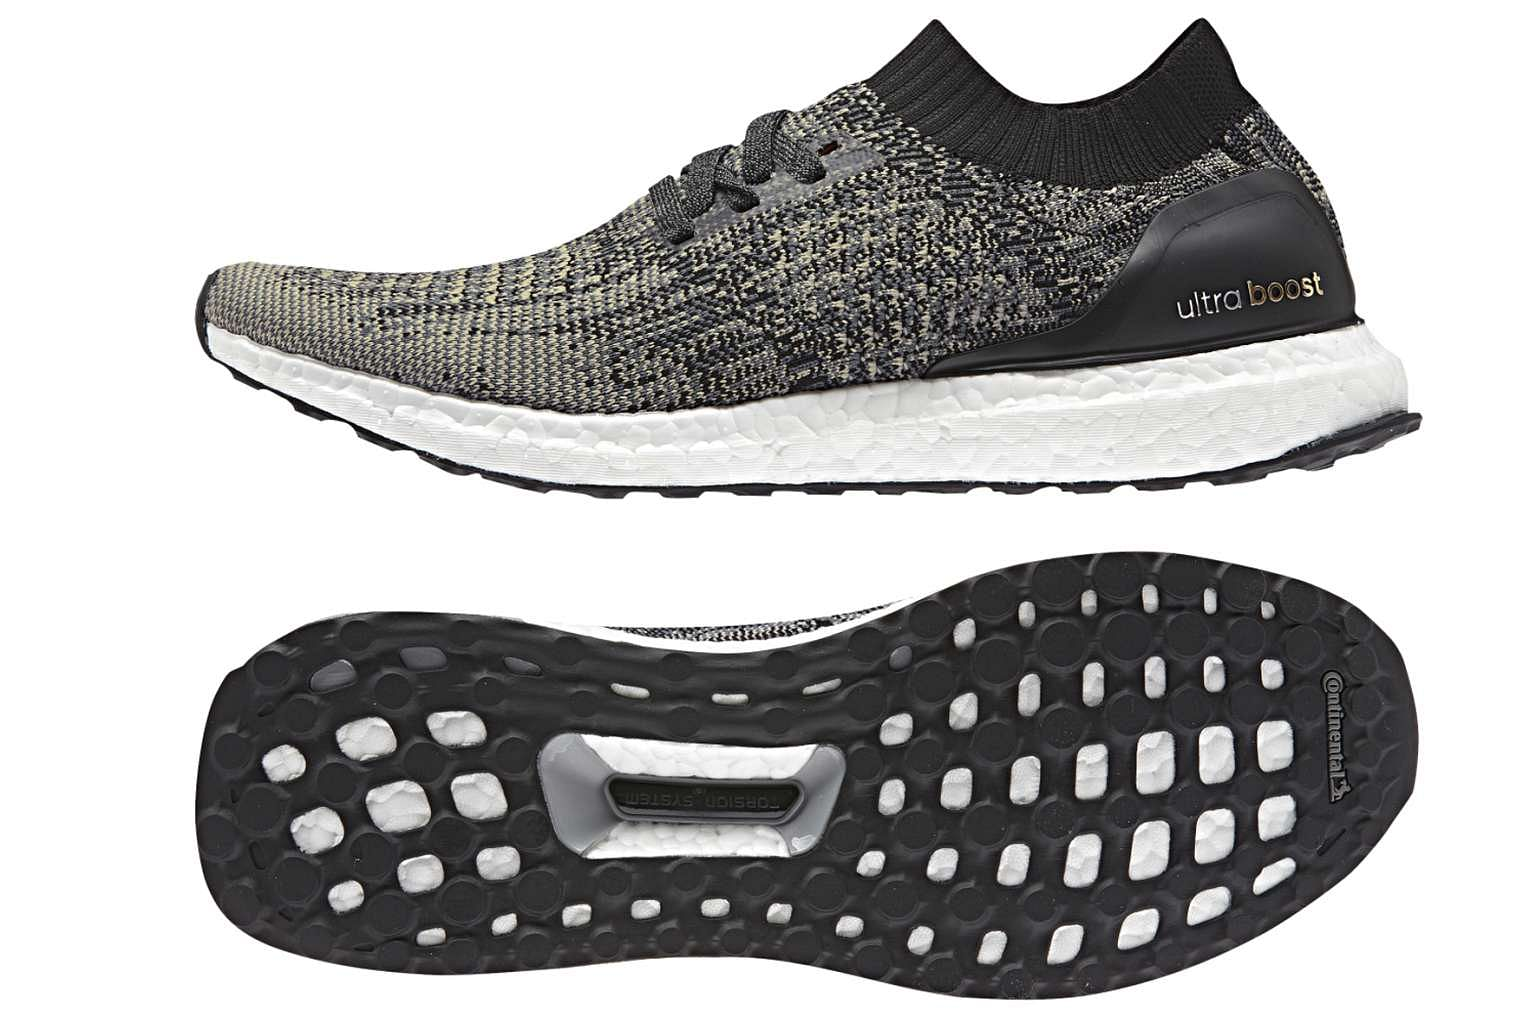 304d21262f2 Adidas Ultra Boost Uncaged  Fashionable and practical